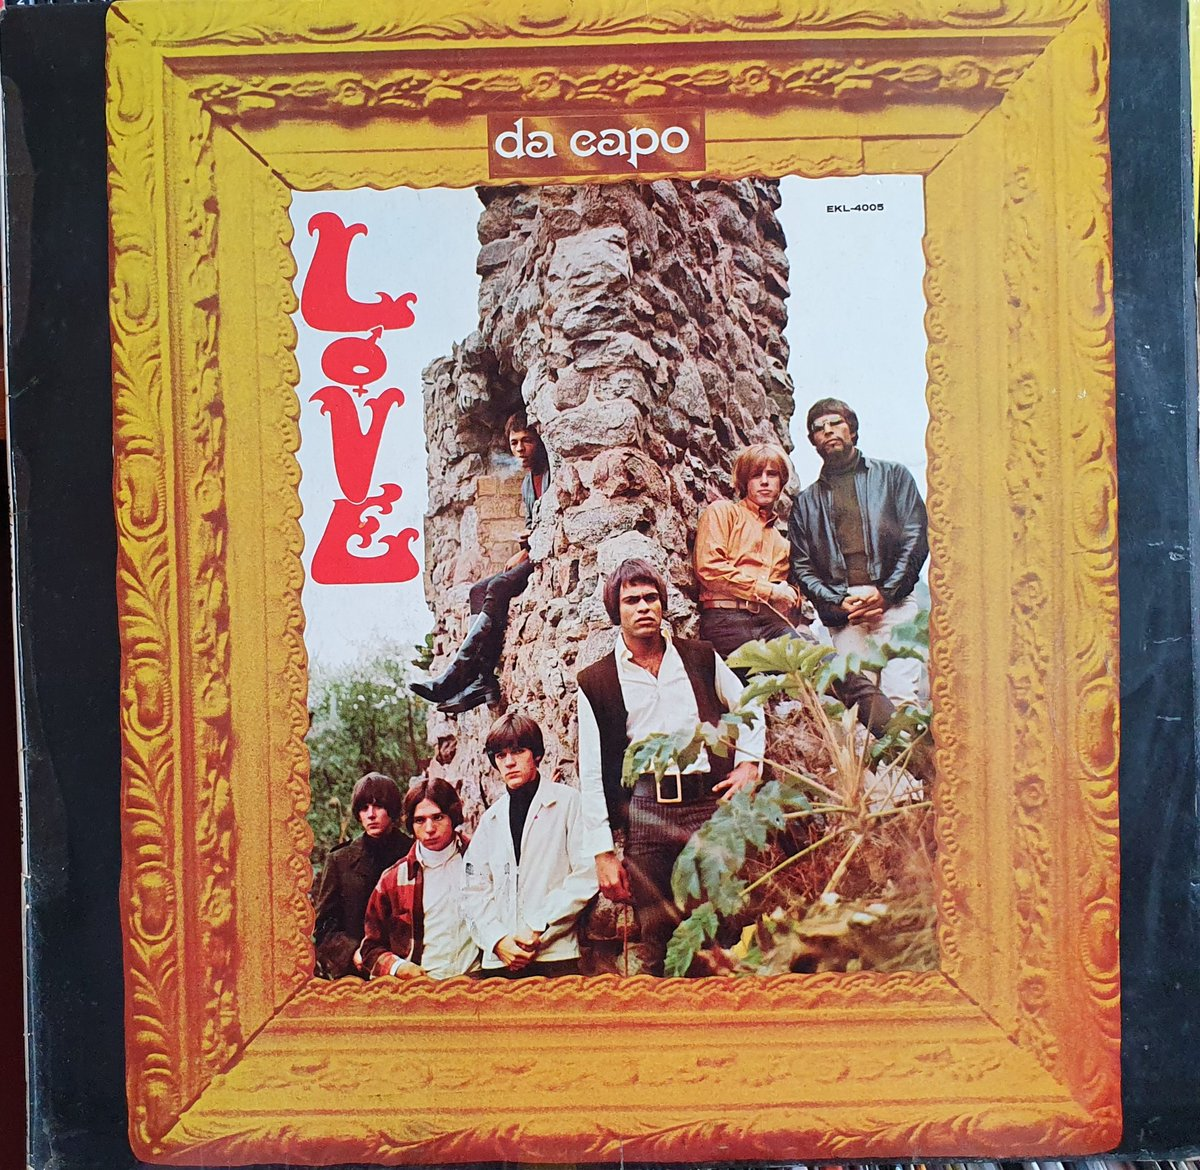 """Love""""s other albums often get overlooked because  of Forever Changes. Da Capo is a decent album. <br>http://pic.twitter.com/8ZNg4PL7nz"""